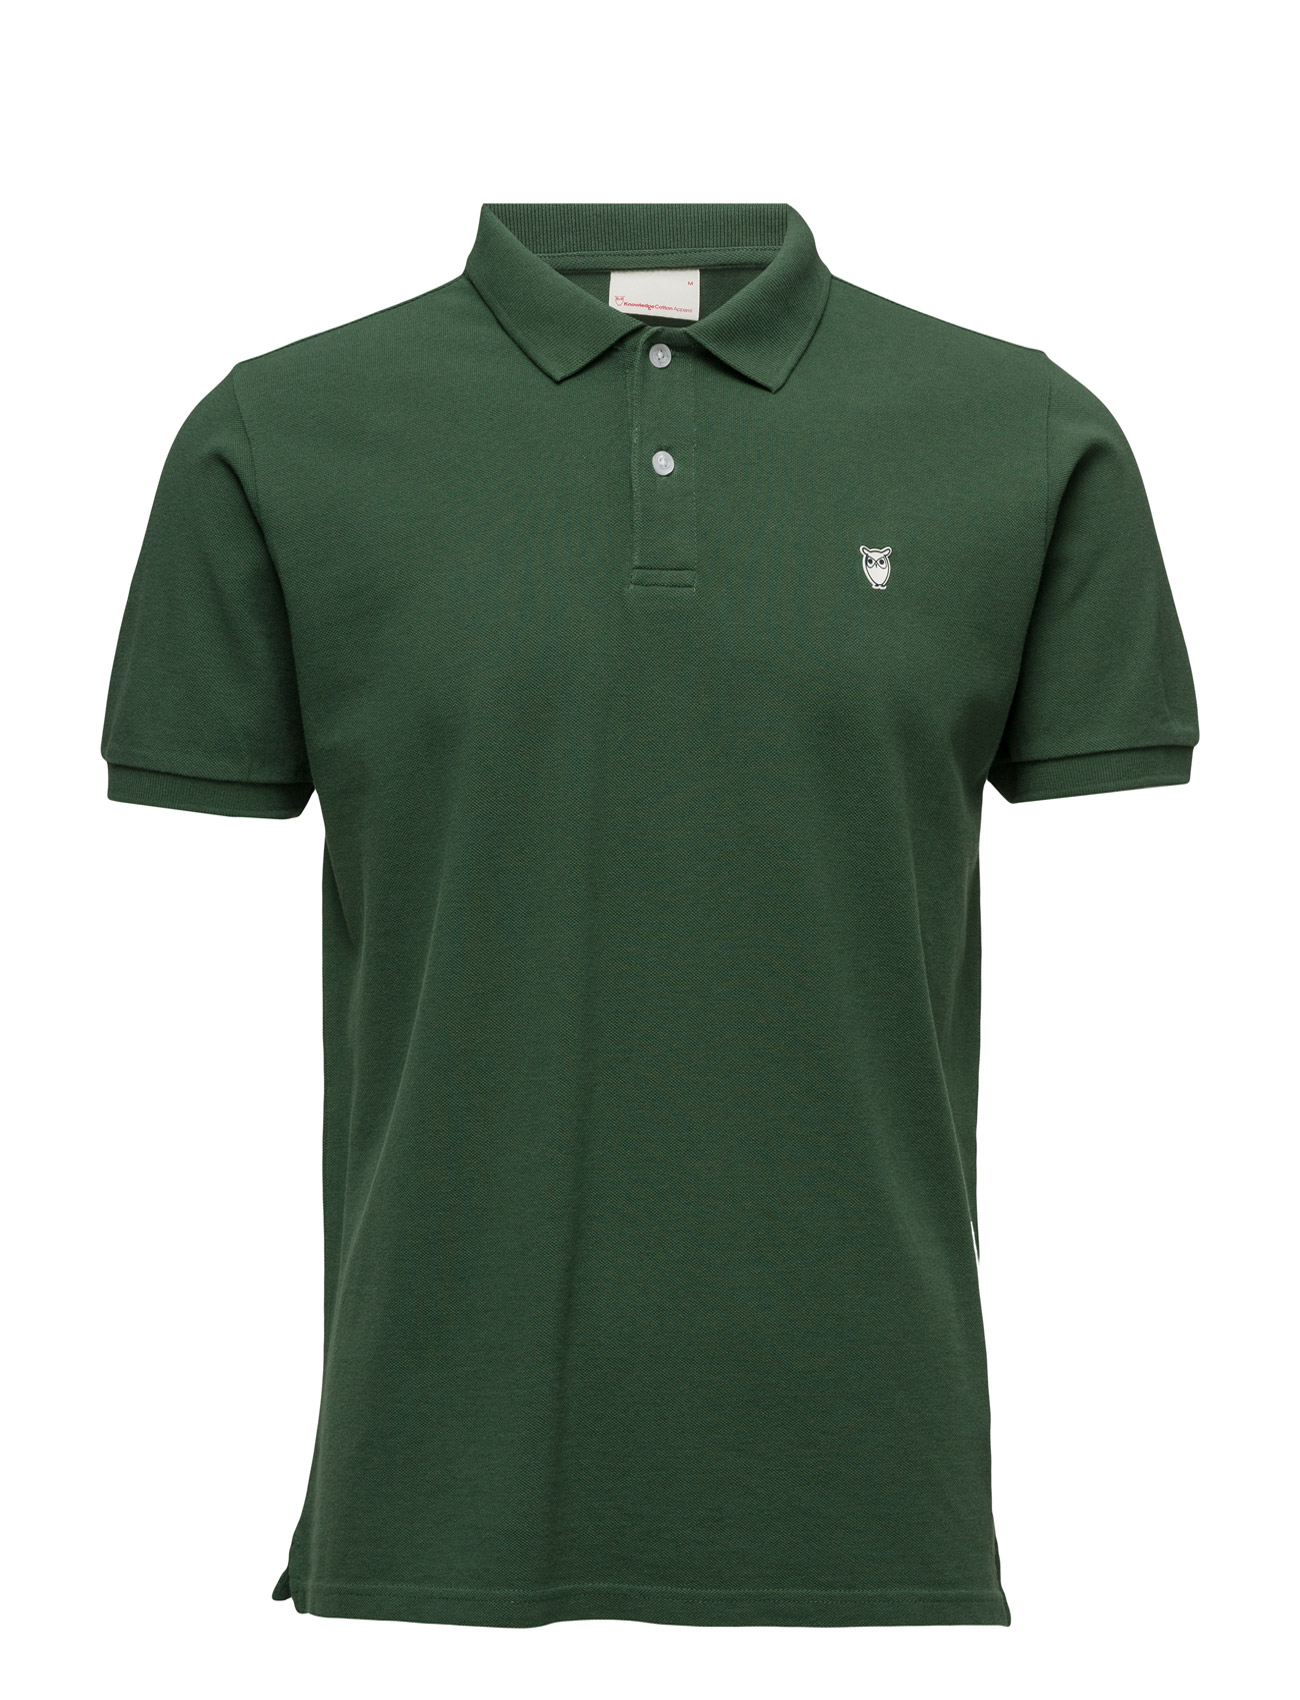 Pique Polo -  Ocs Knowledge Cotton Apparel Polo t-shirts til Mænd i